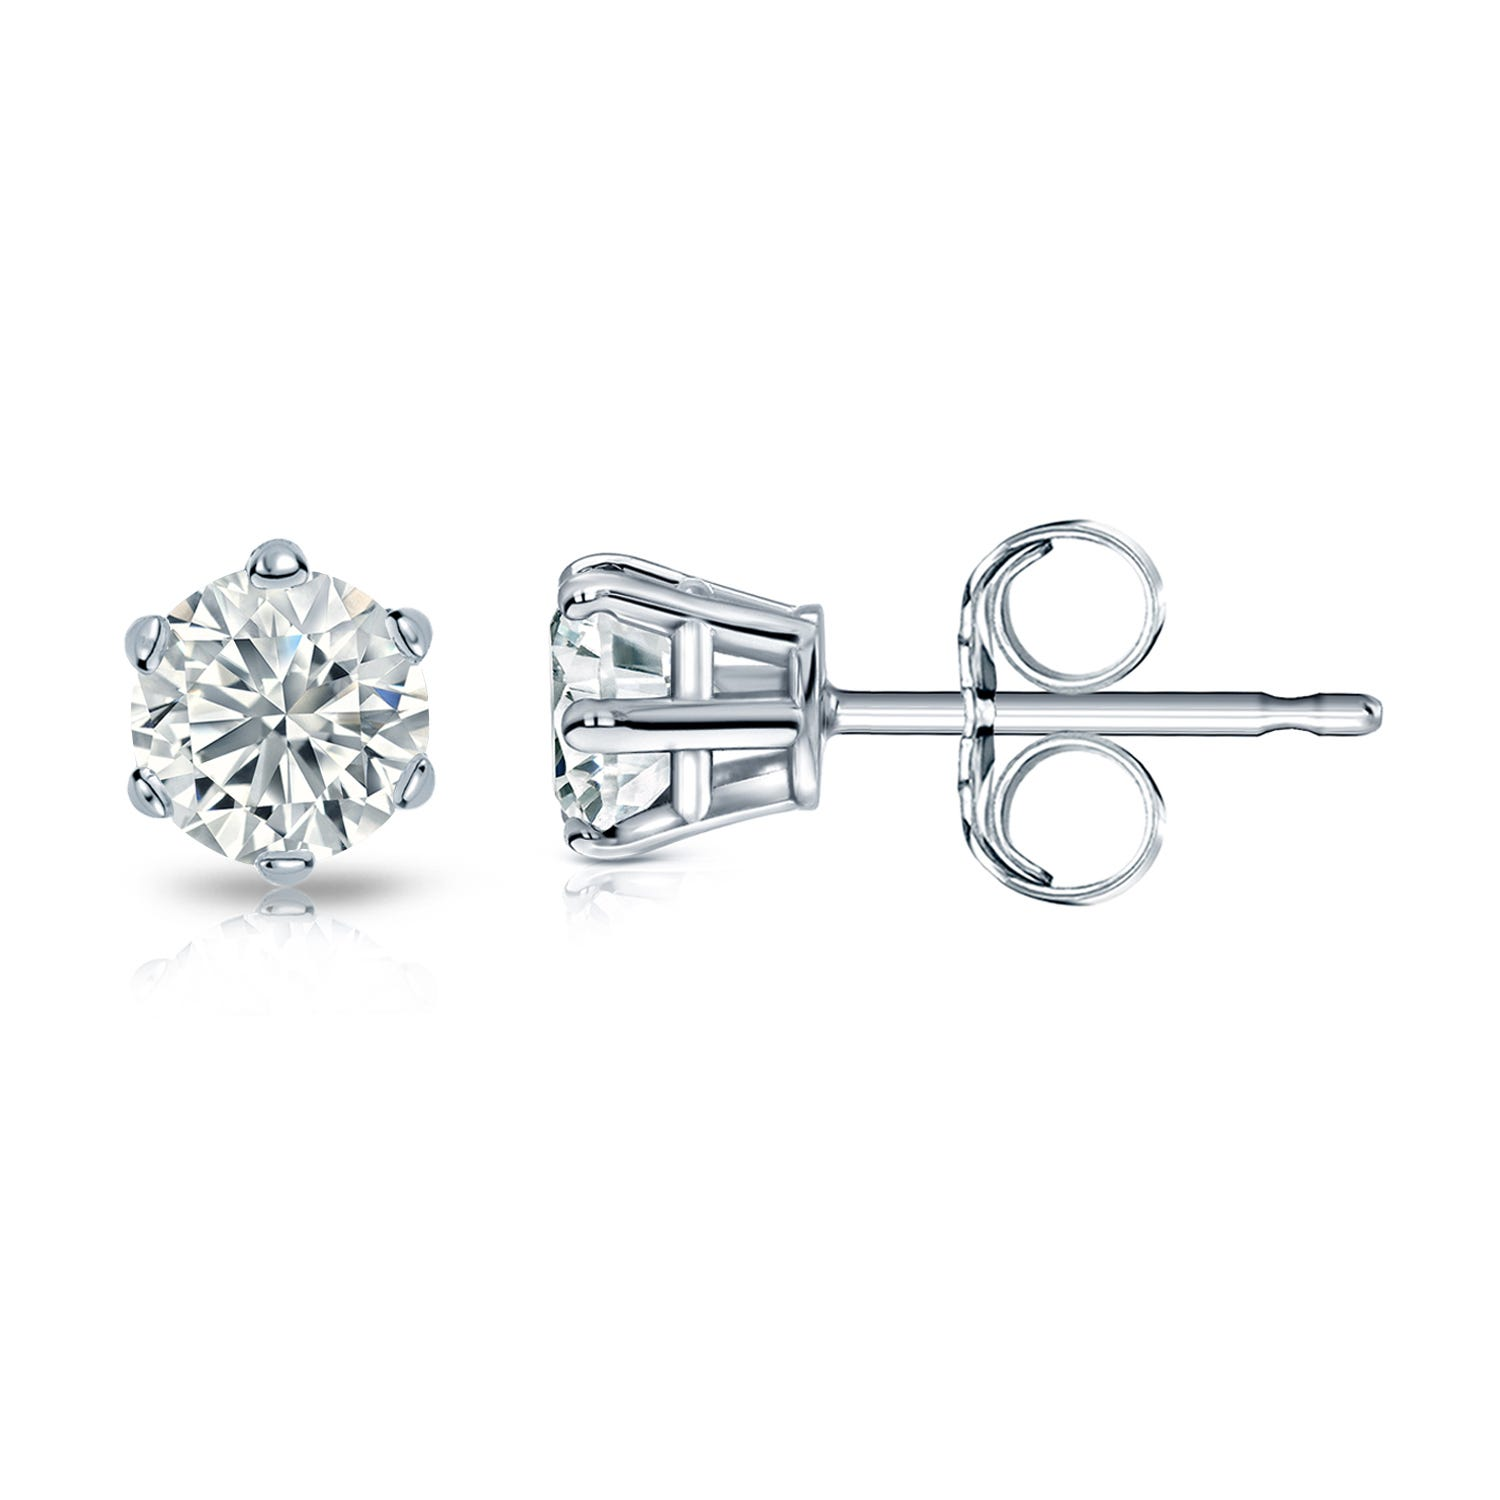 Round Diamond 1/2ctw. (IJ-I1) Solitaire Stud 6-Prong Earrings in 14K White Gold